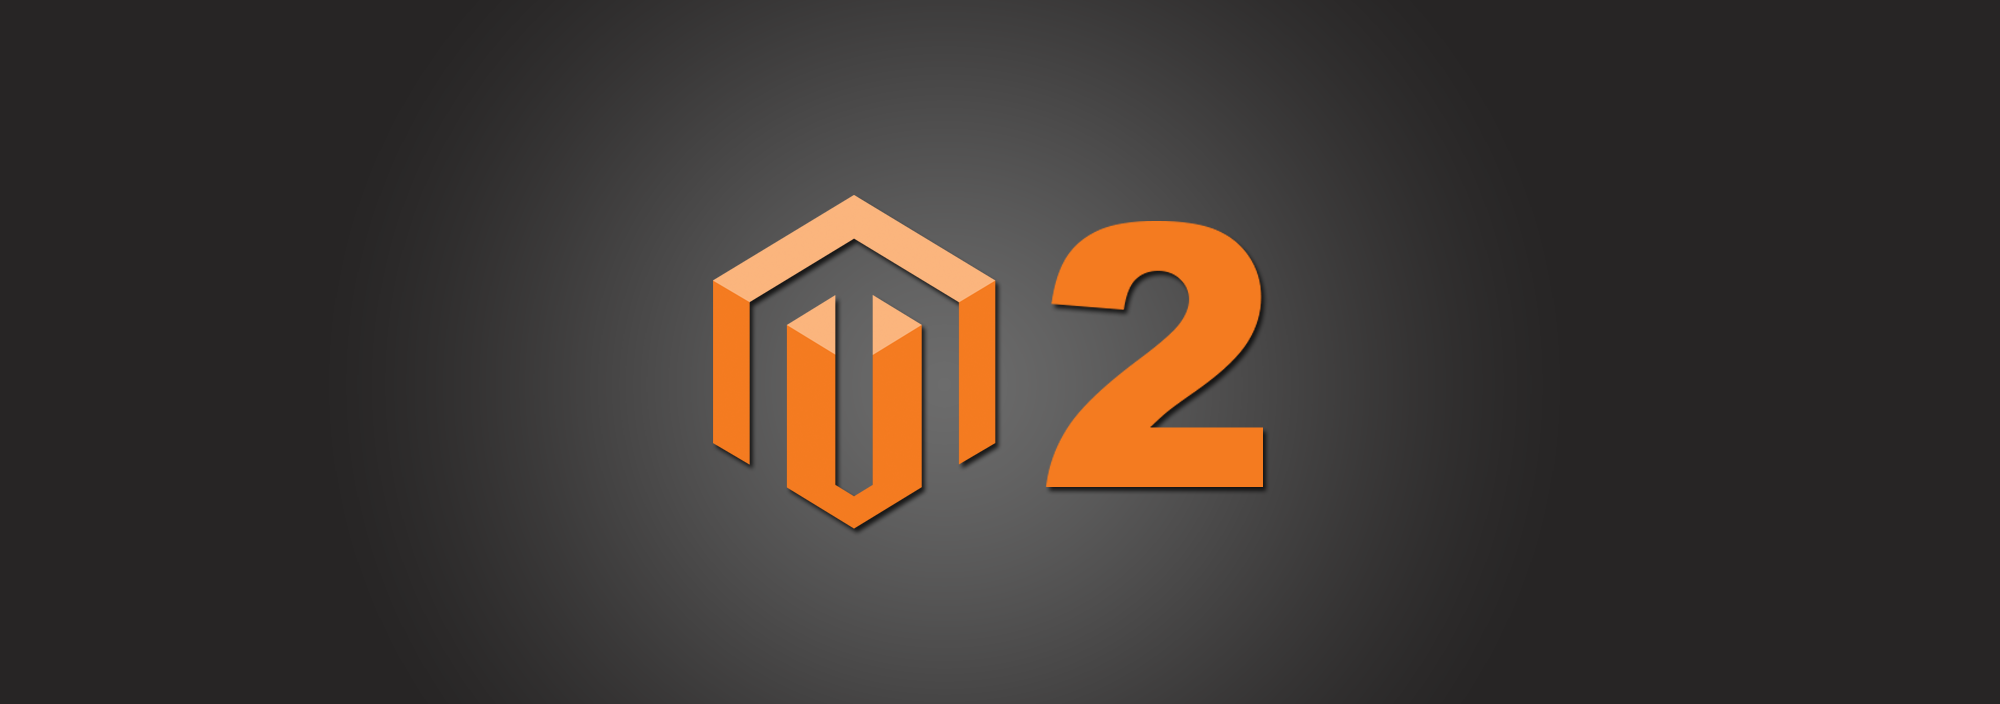 The Long Awaited Magento 2.0 Has Finally Launched